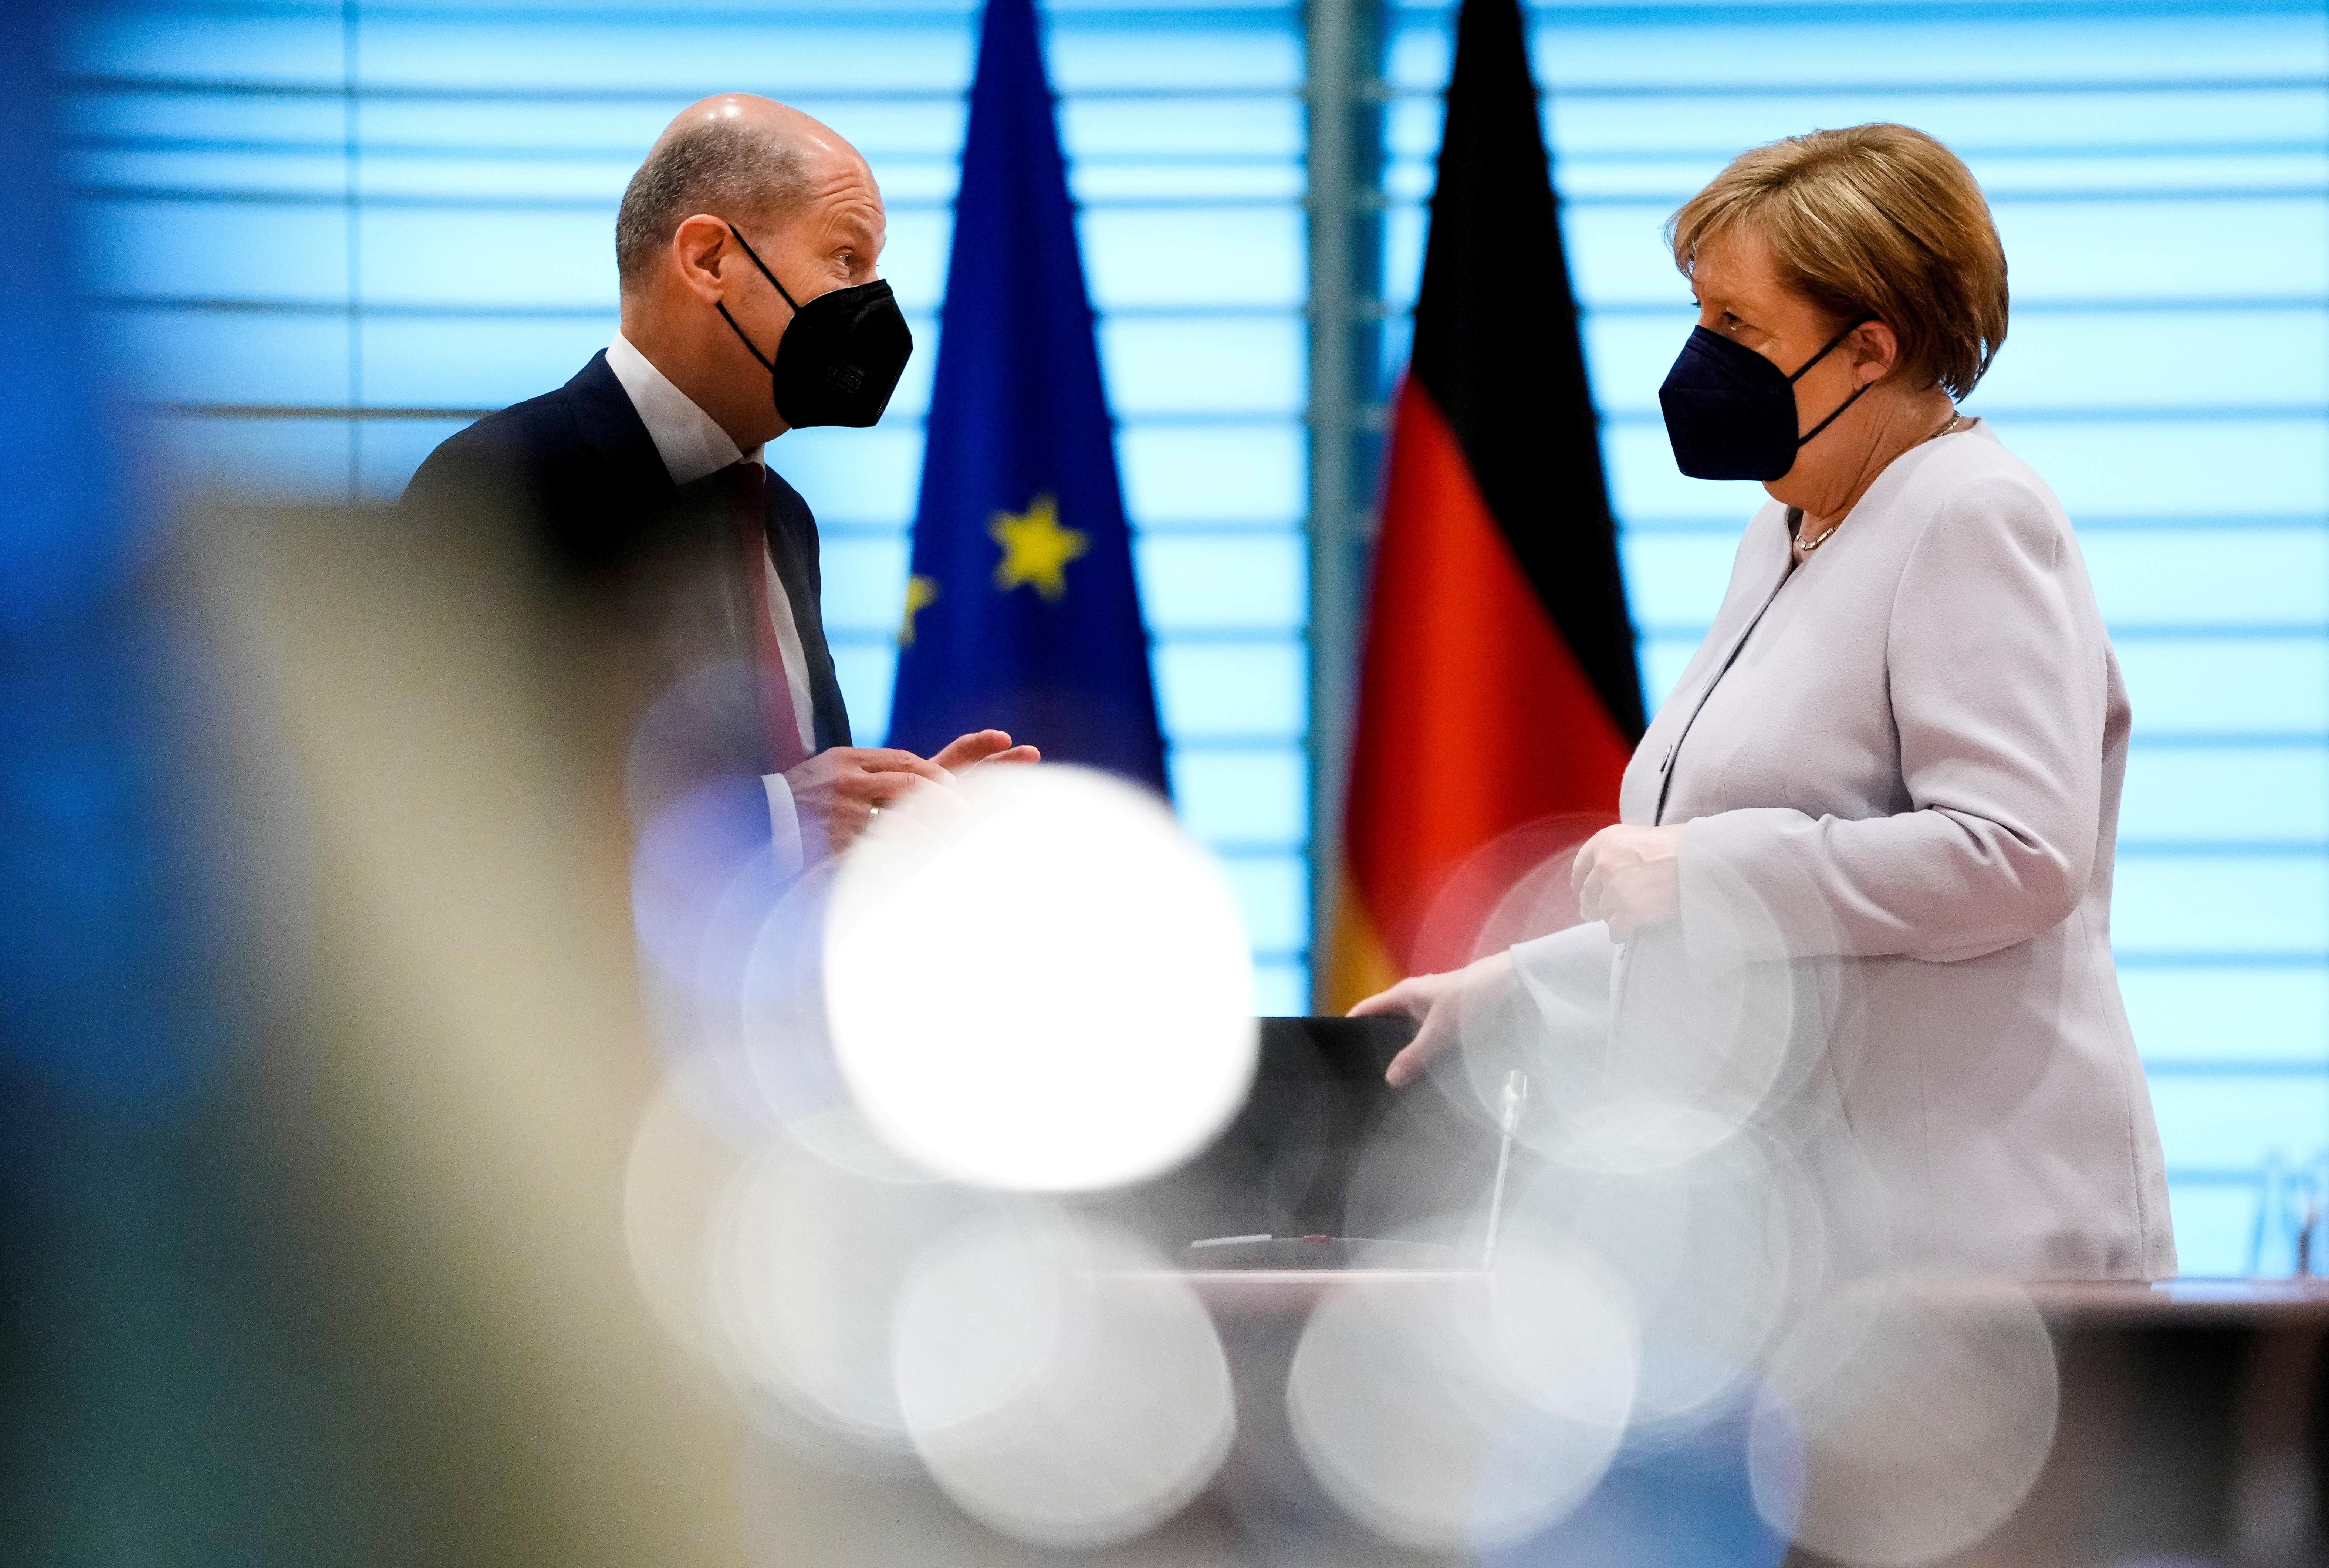 German Chancellor Angela Merkel speaks with Finance Minister Olaf Scholz at the weekly cabinet meeting in Berlin, Germany June 9, 2021.